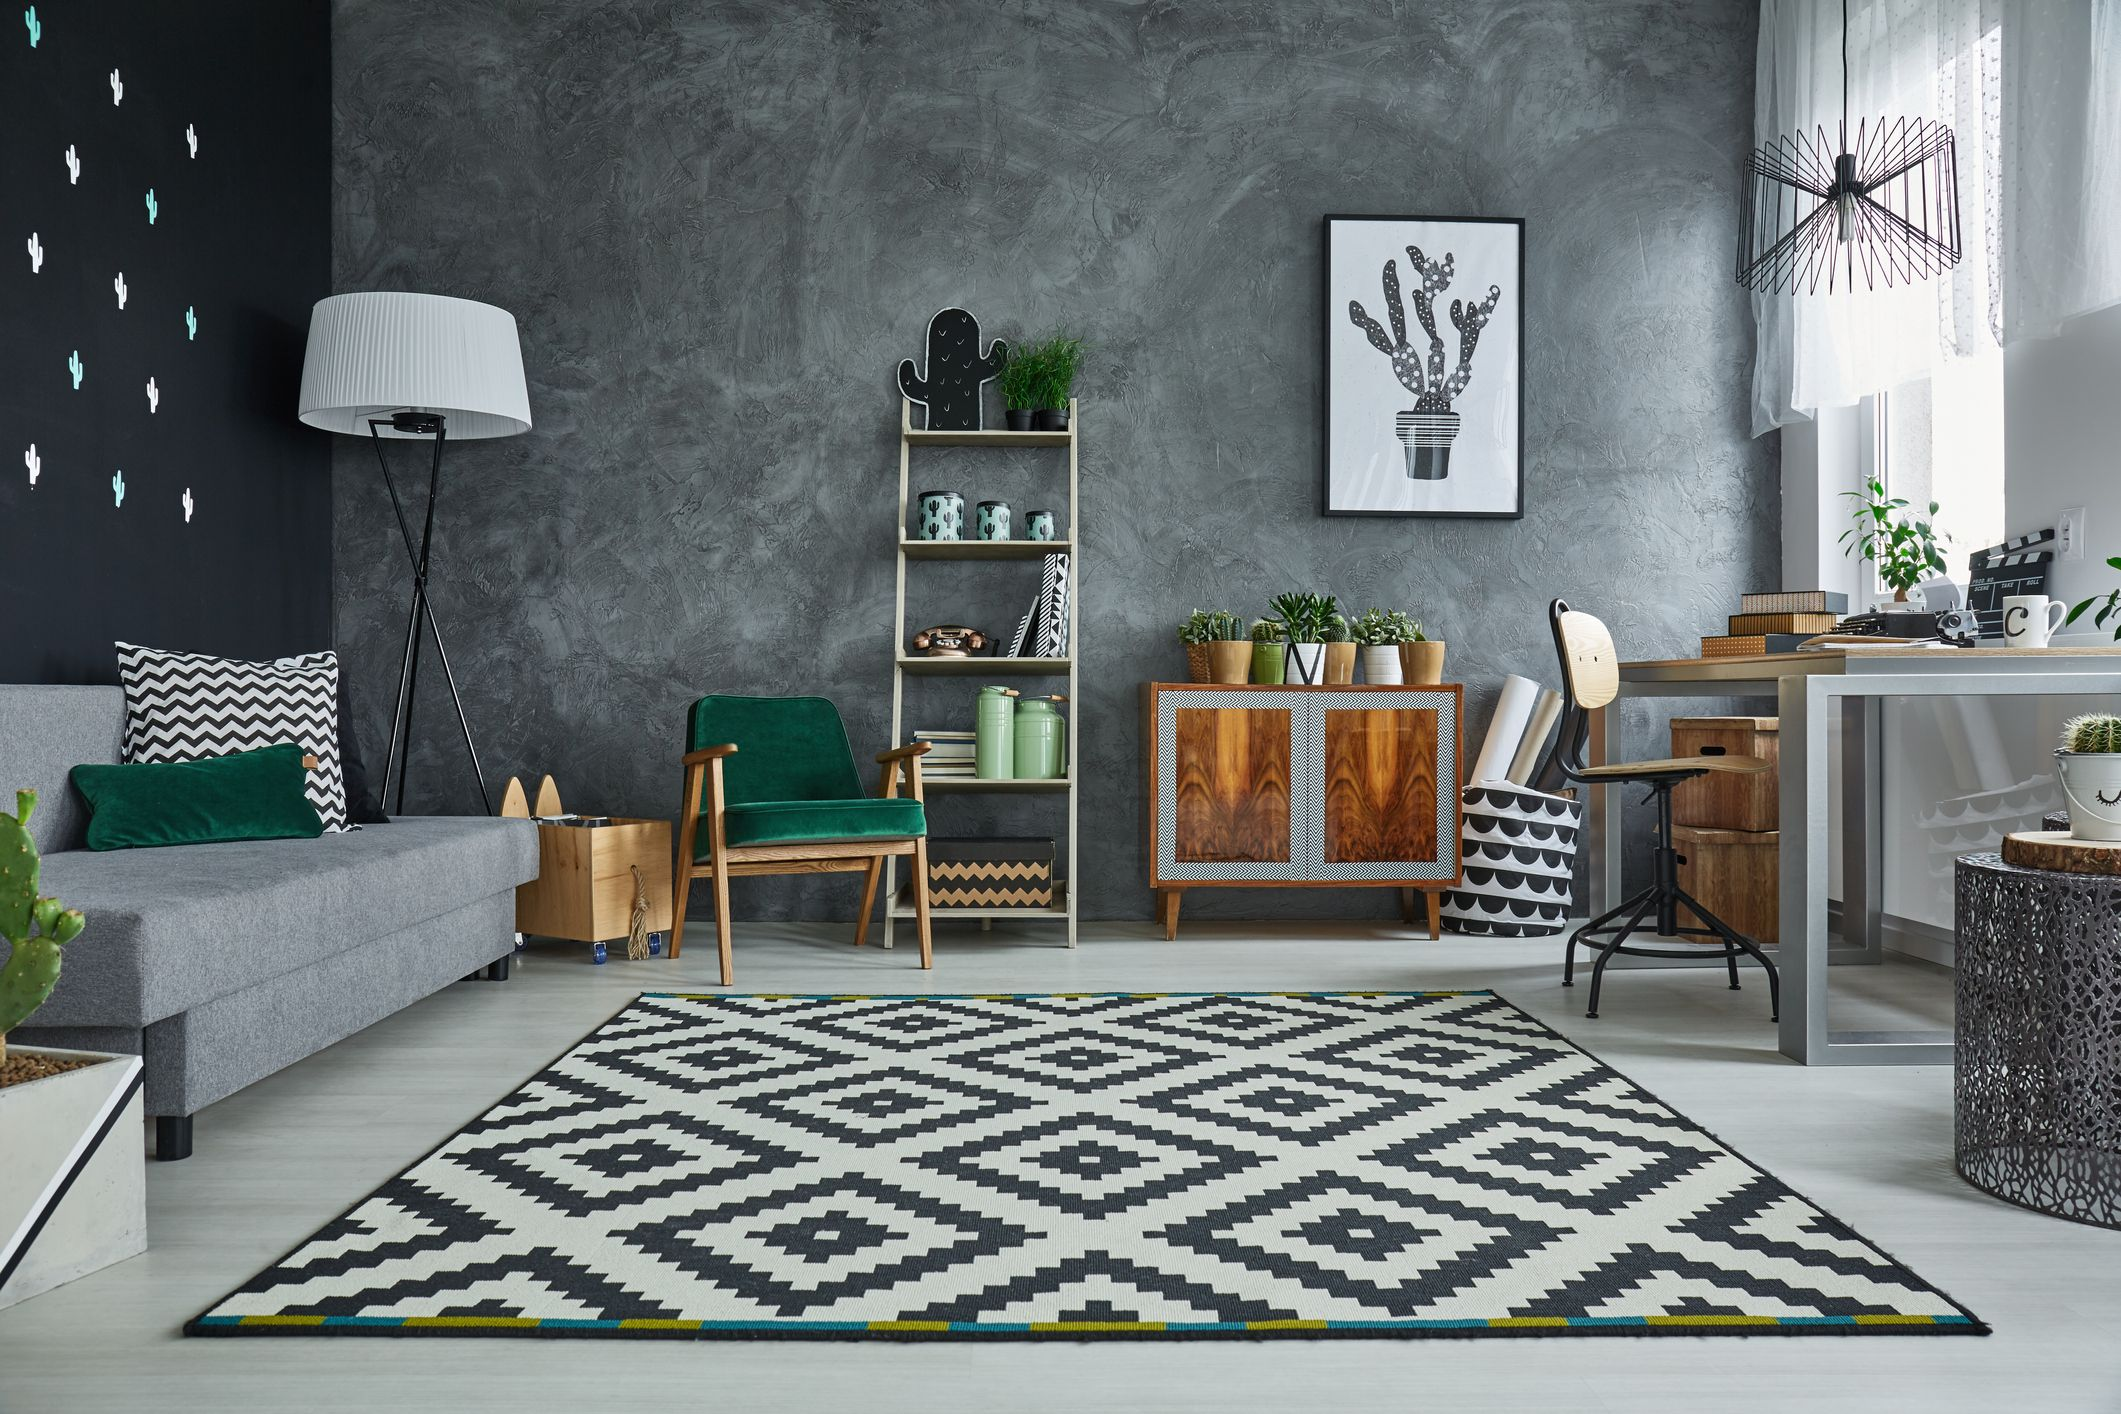 14 Best Washable Rugs for Every Room in Your House